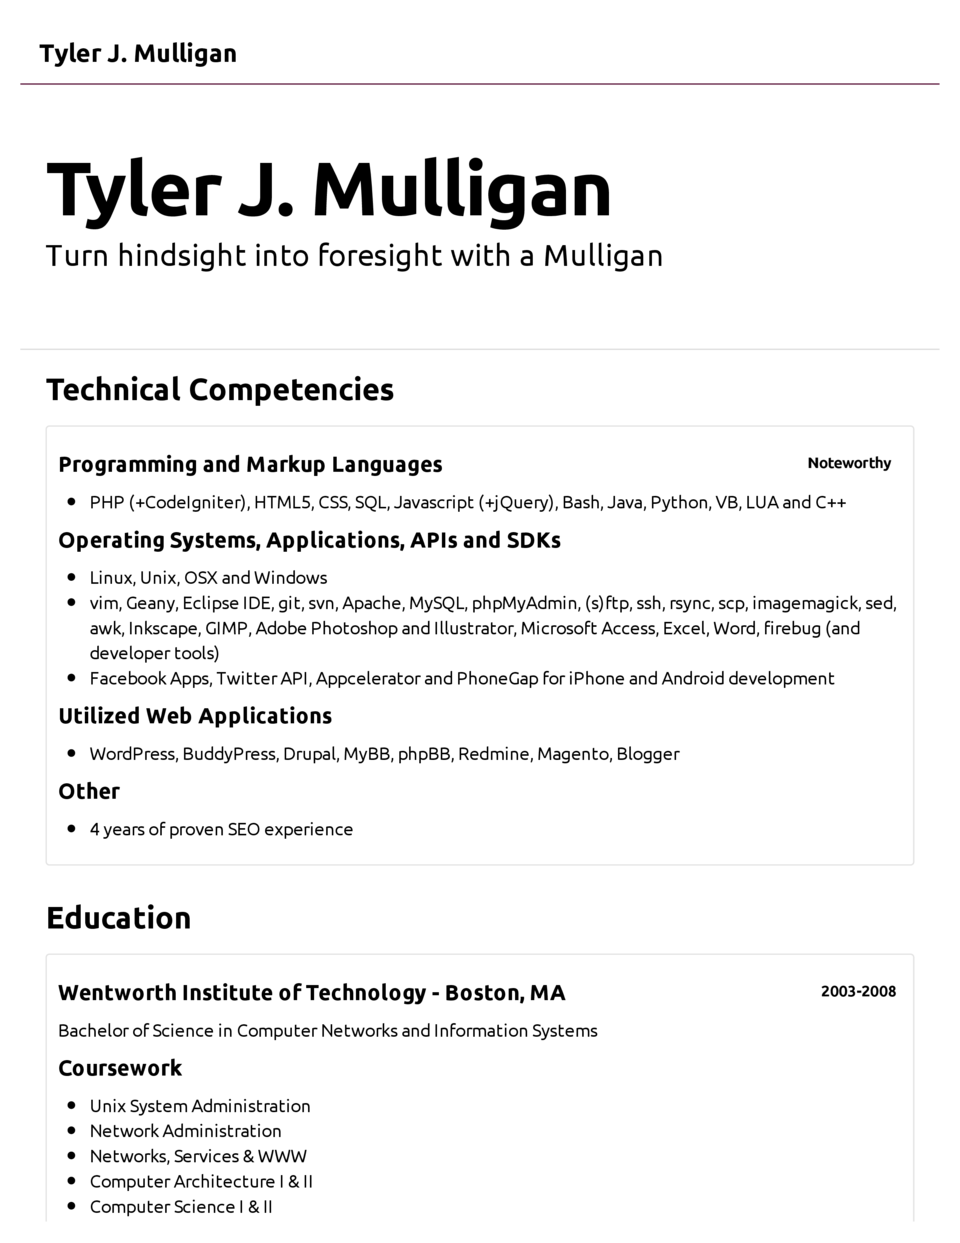 Resume Template Copy And Paste Basic Resume Template Pdf  Httpwwwresumecareerbasic